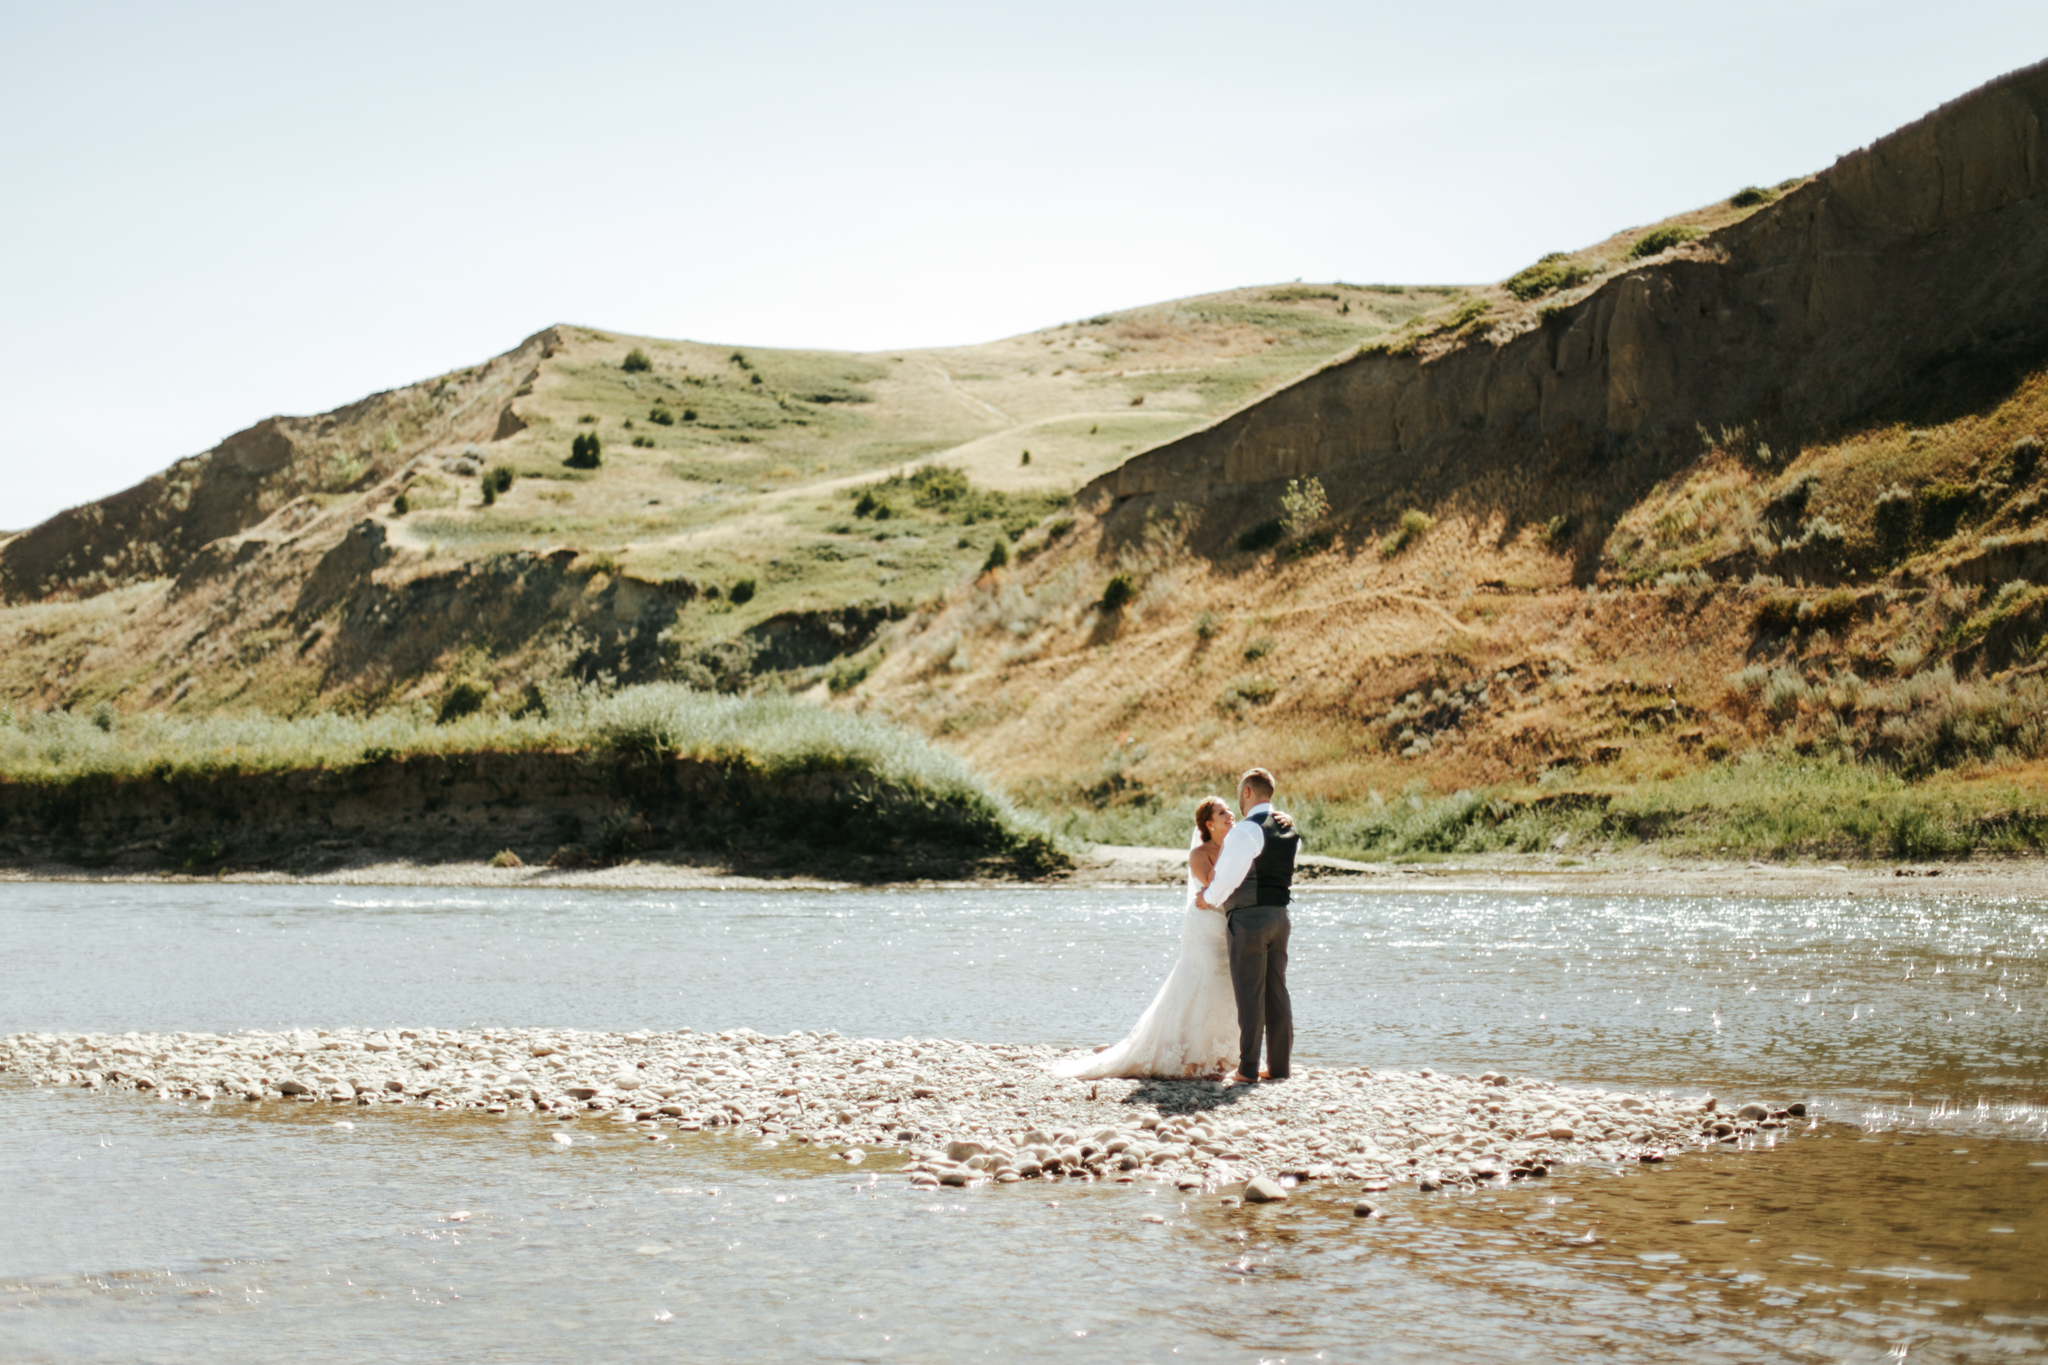 lethbridge-wedding-photographer-love-and-be-loved-photography-trent-danielle-galt-reception-picture-image-photo-147.jpg